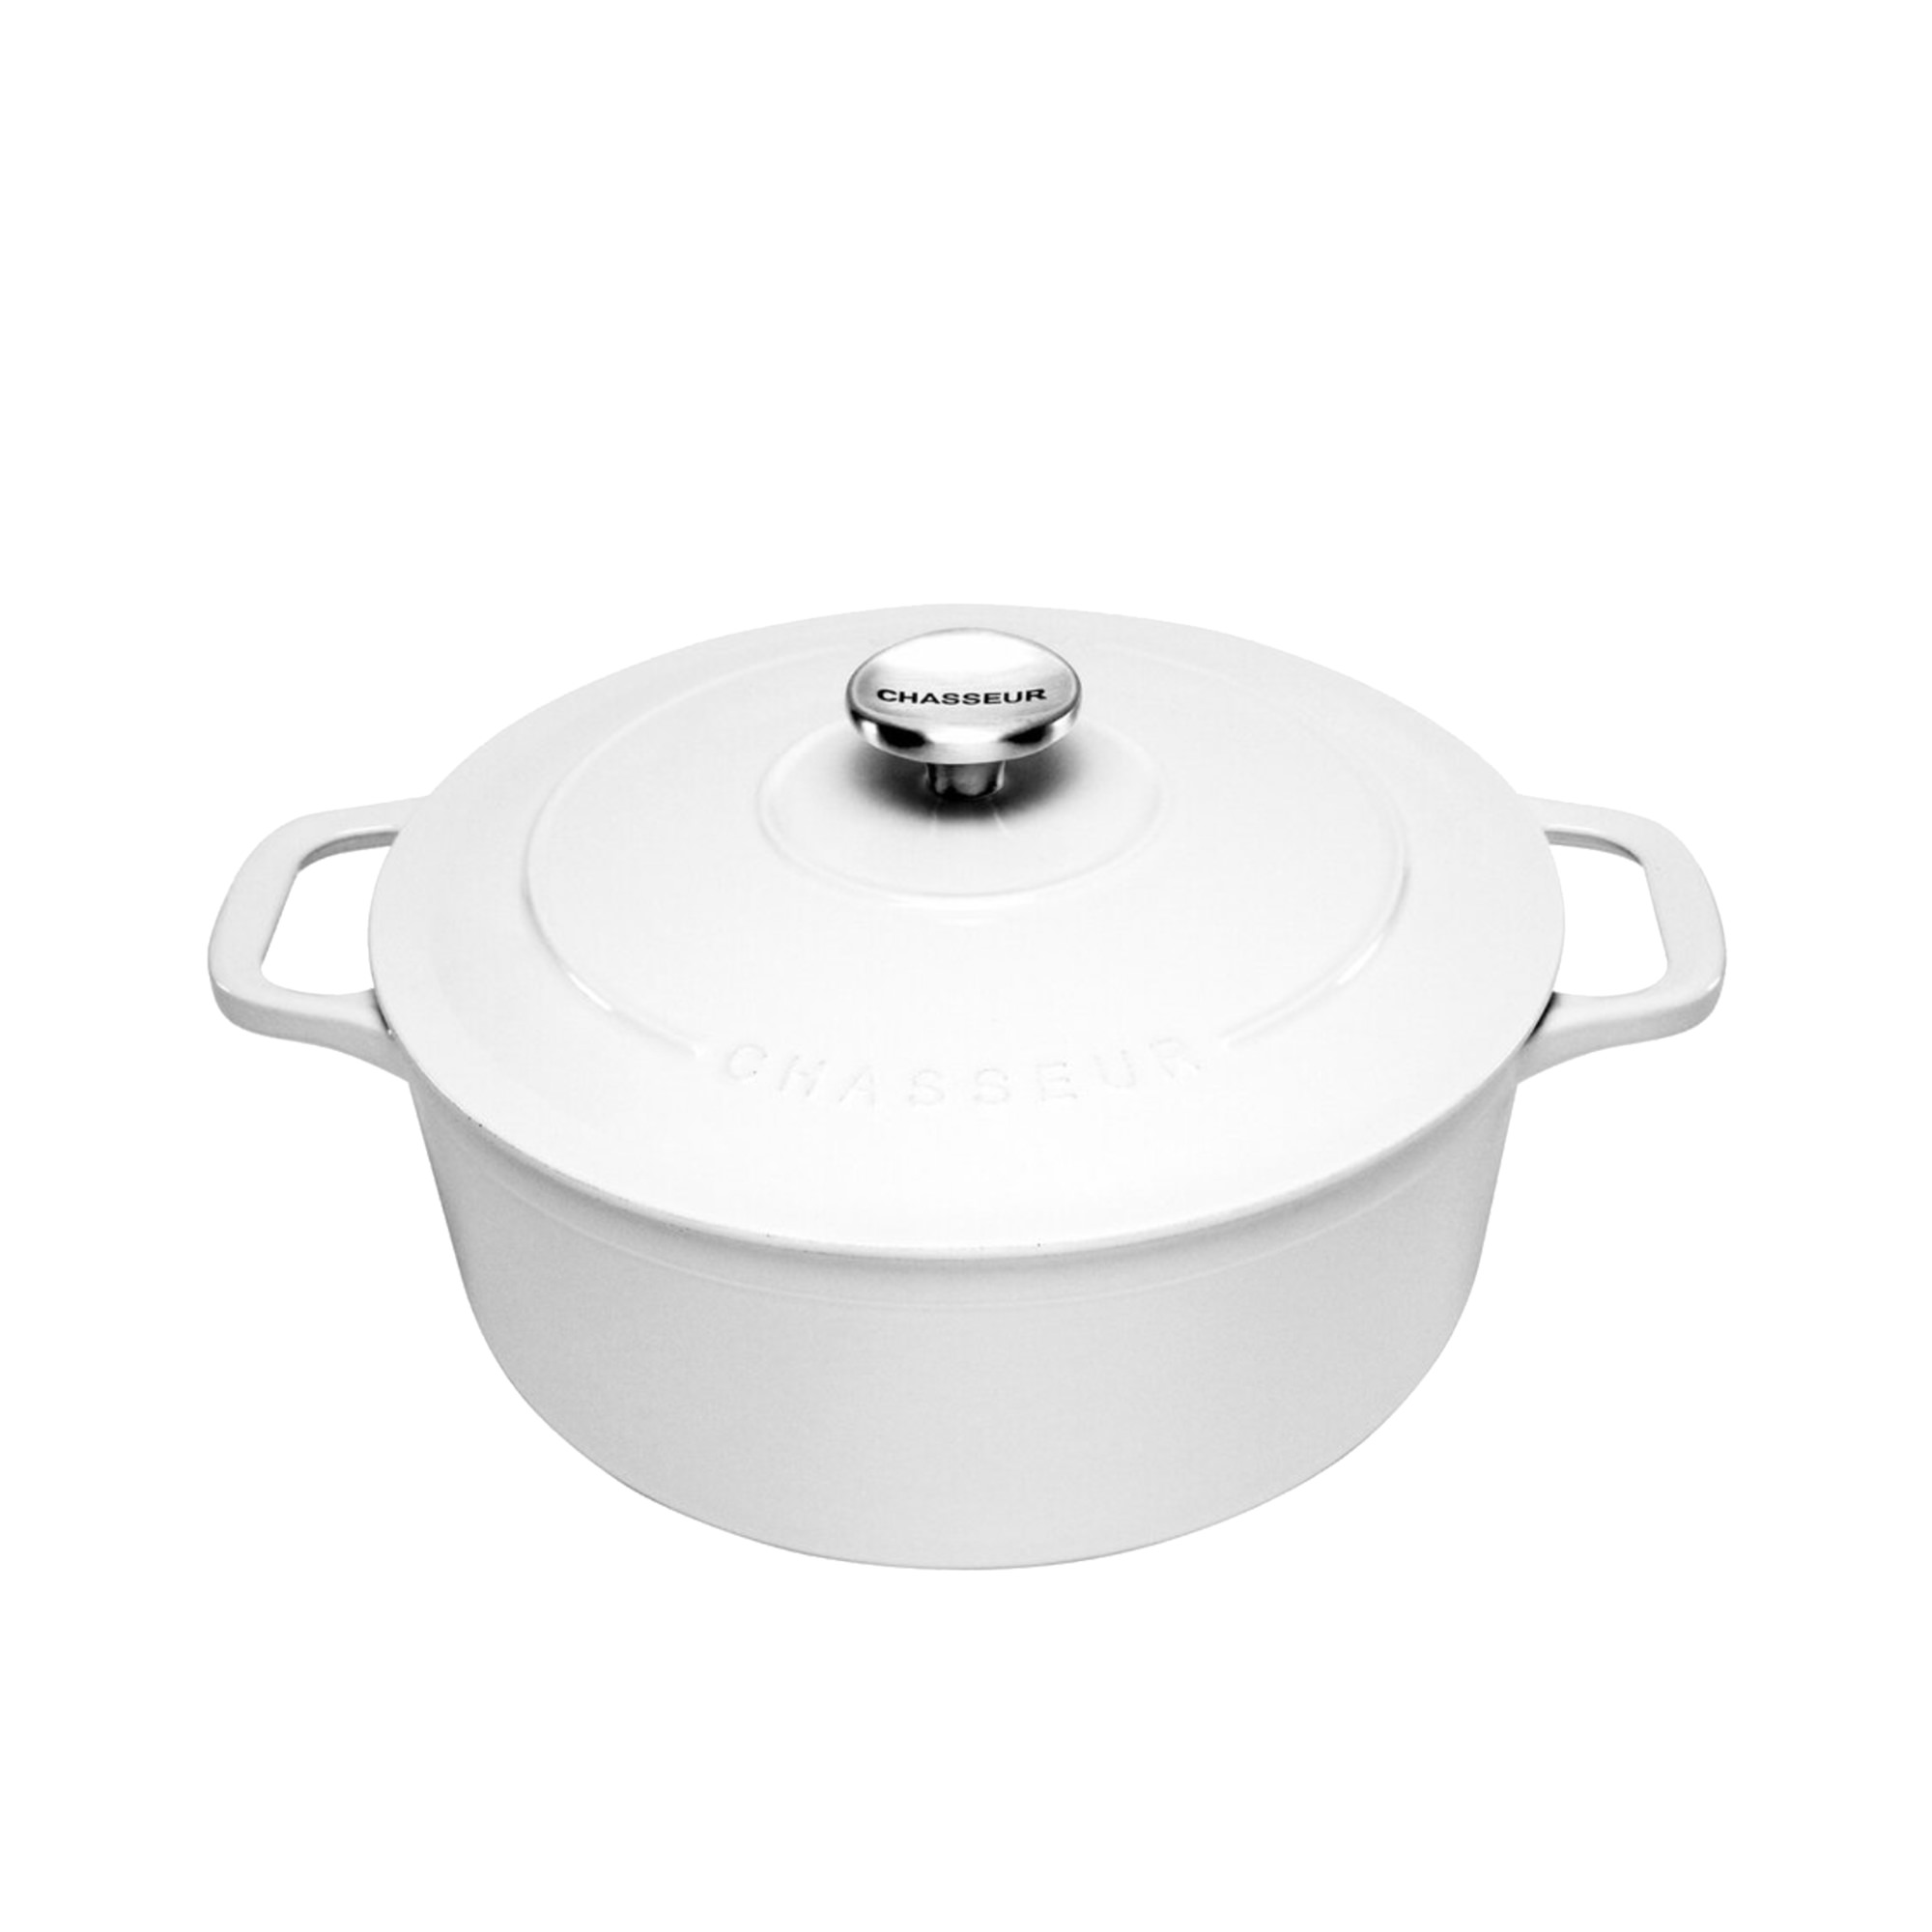 Chasseur Round French Oven 24cm - 4L Brilliant White